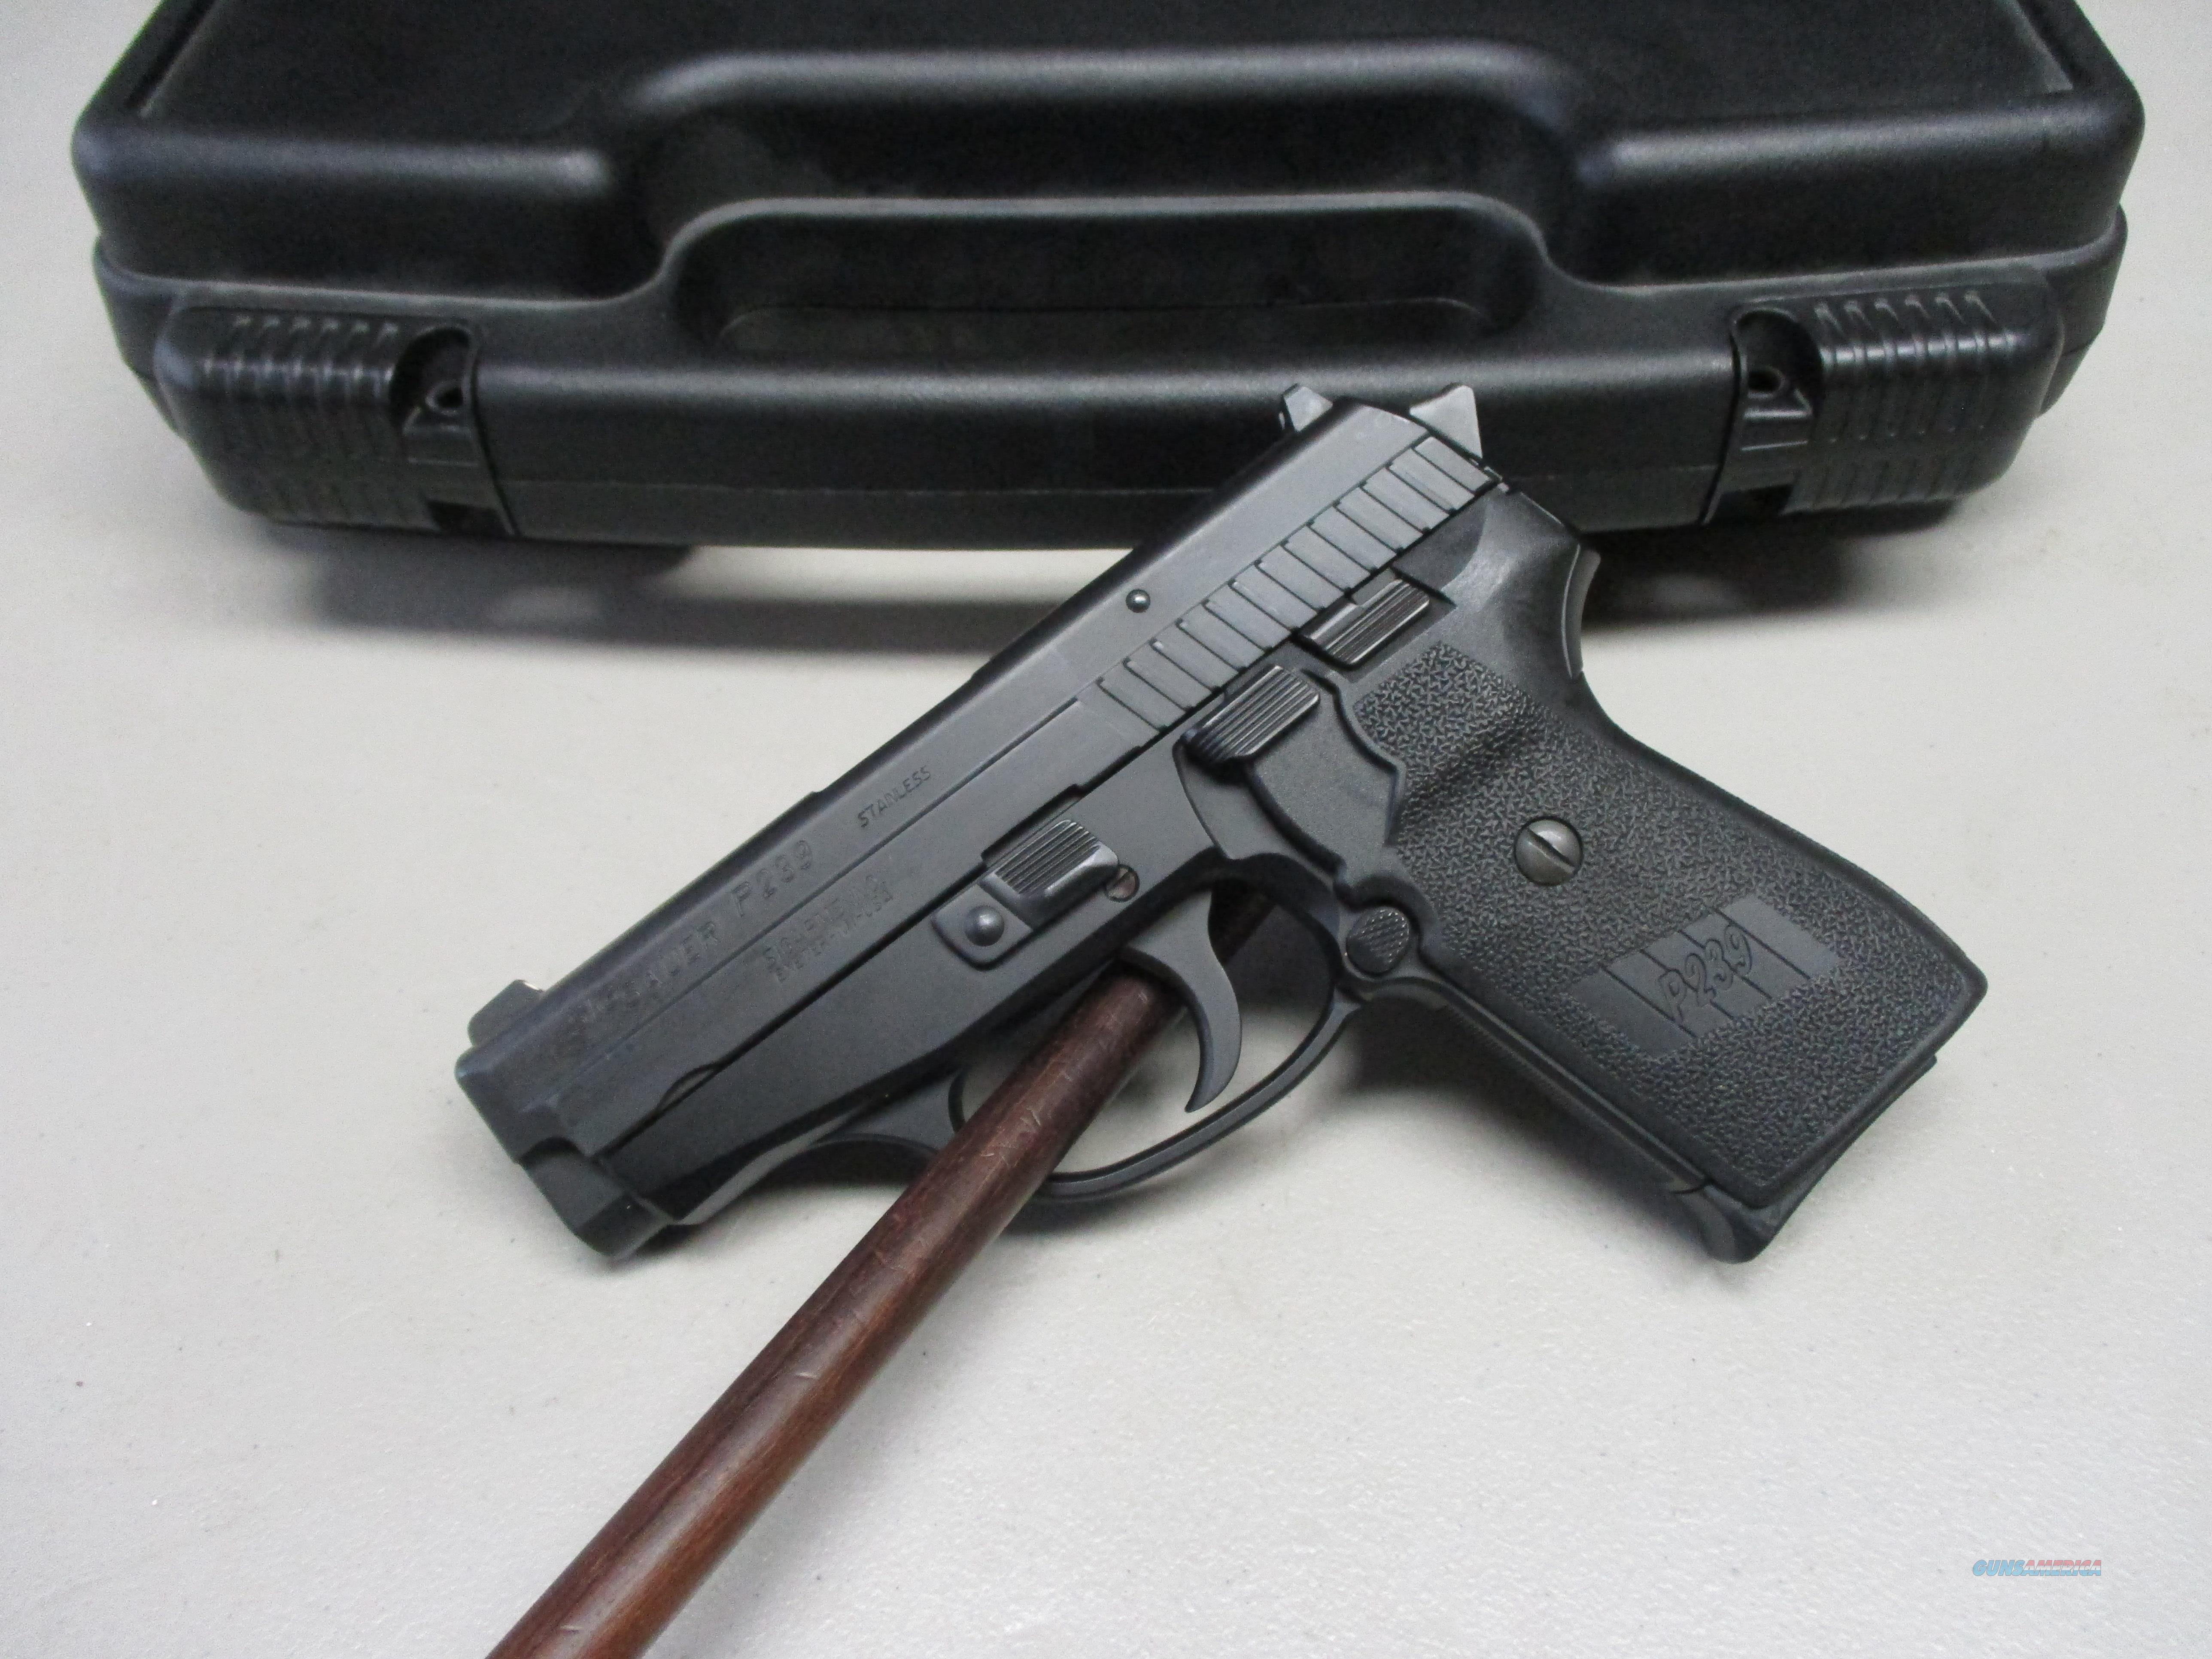 Sig Sauer P239 9mm 8+1 w/box, spare mag, manual  Guns > Pistols > Sig - Sauer/Sigarms Pistols > P239